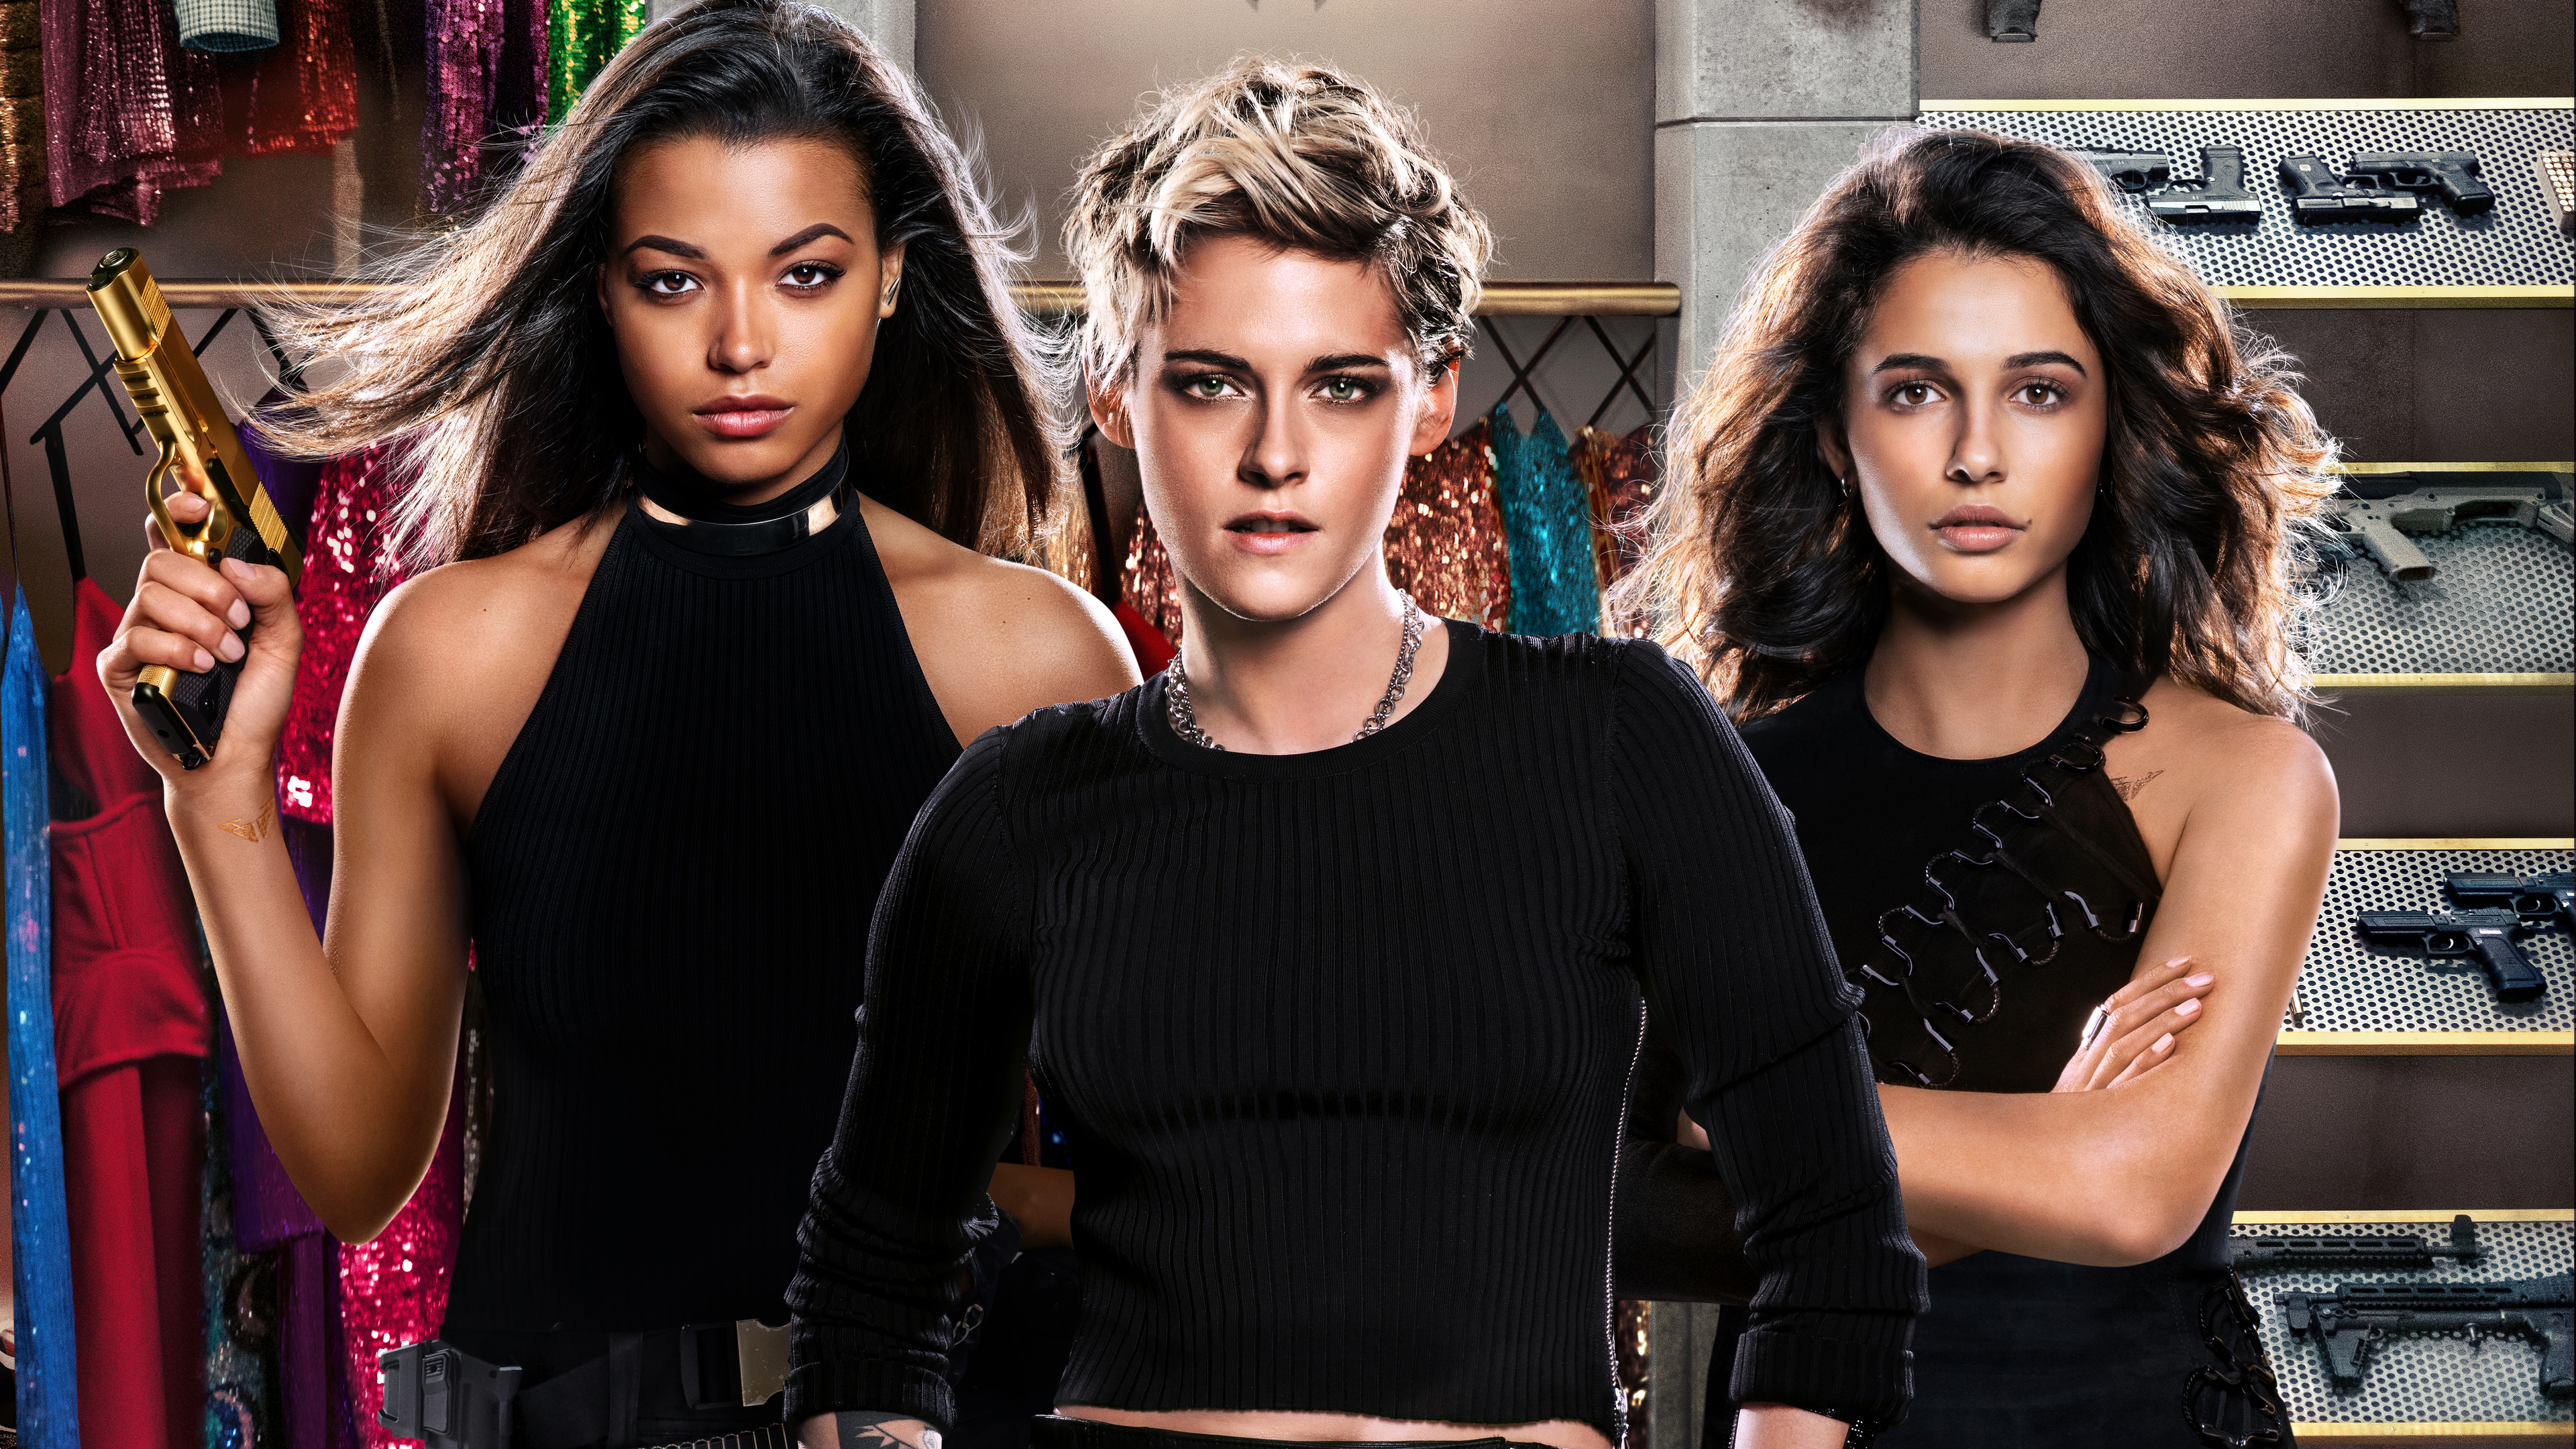 charlies angels 2019 movie 1572370988 - Charlies Angels 2019 Movie - naomi scott wallpapers, movies wallpapers, kristen stewart wallpapers, hd-wallpapers, ella balinska wallpapers, charlies angels wallpapers, 8k wallpapers, 5k wallpapers, 4k-wallpapers, 2019 movies wallpapers